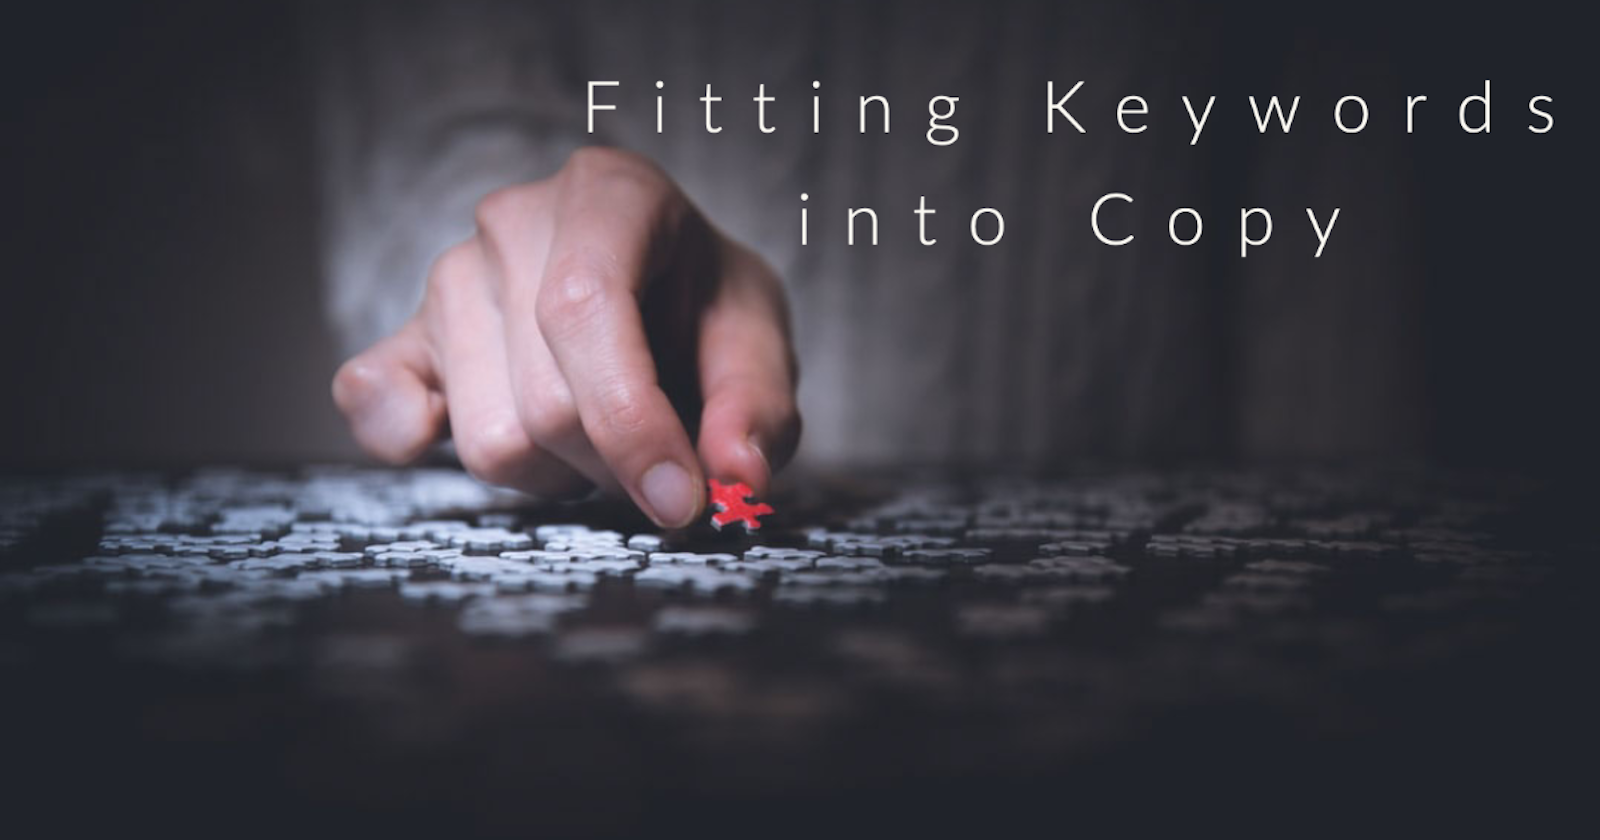 how-to-add-keywords-in-your-copy-while-making-google-love-you-5f5f13f0eb0b5.png